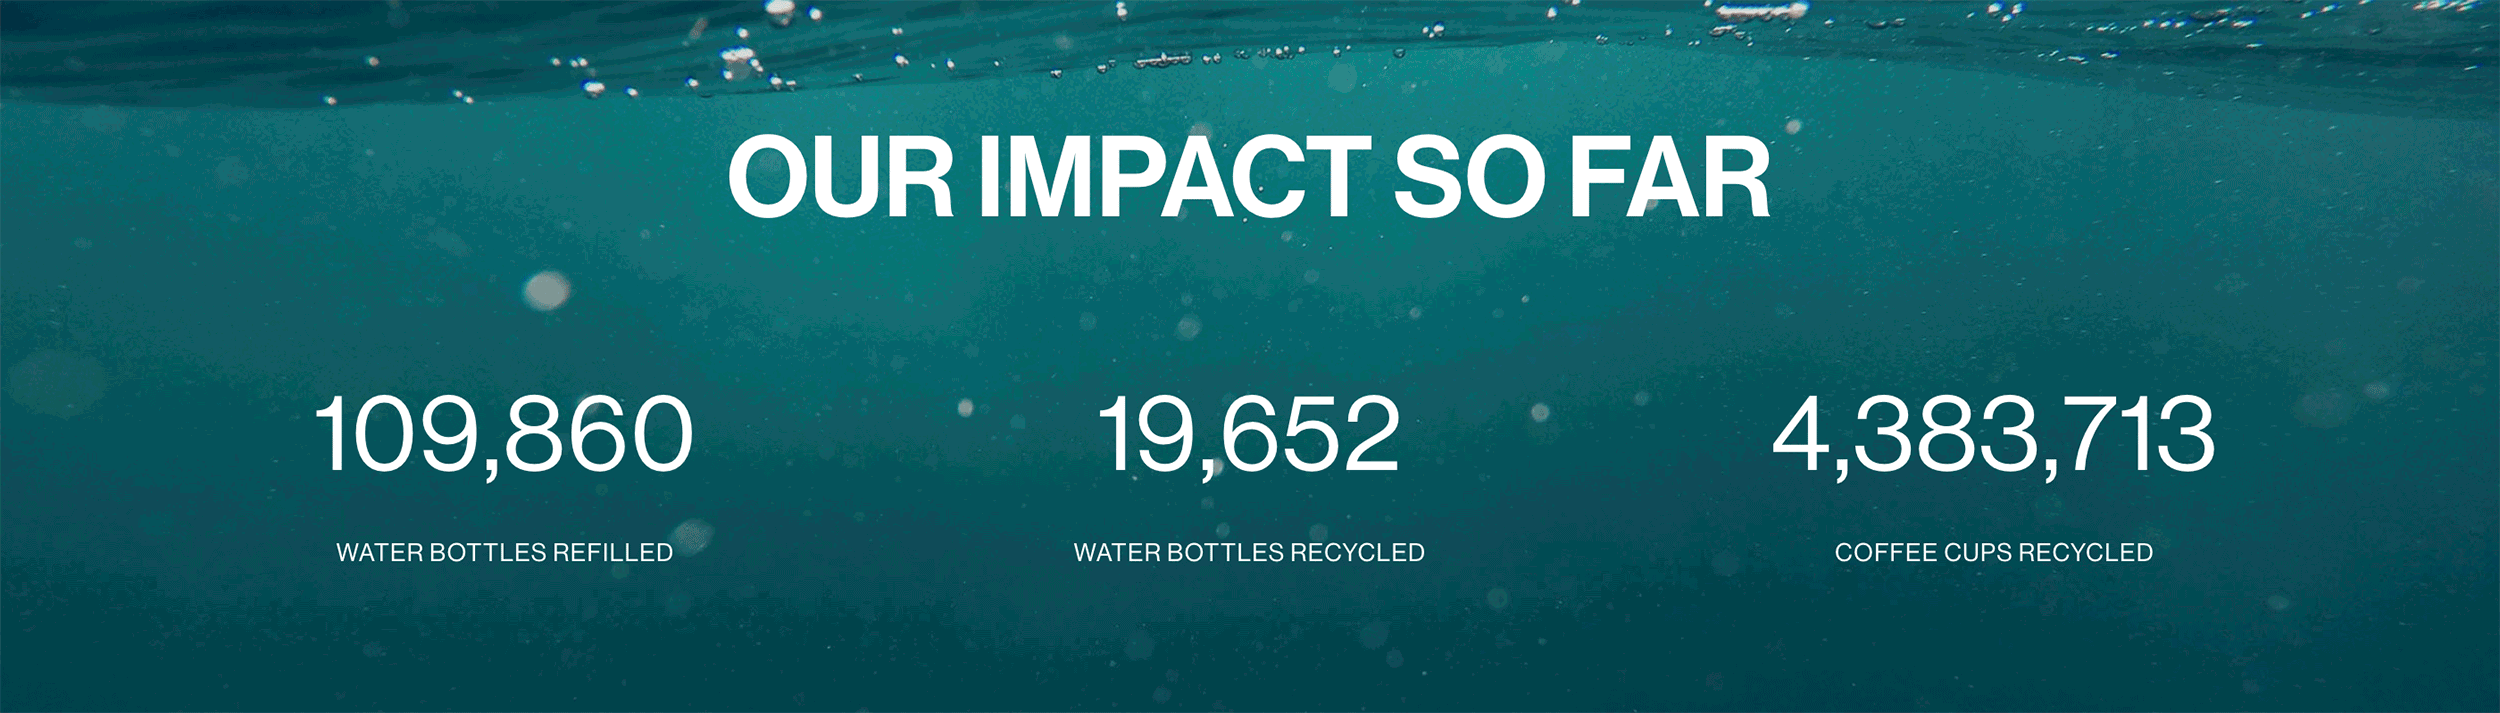 Our-Impact-So-Far.png